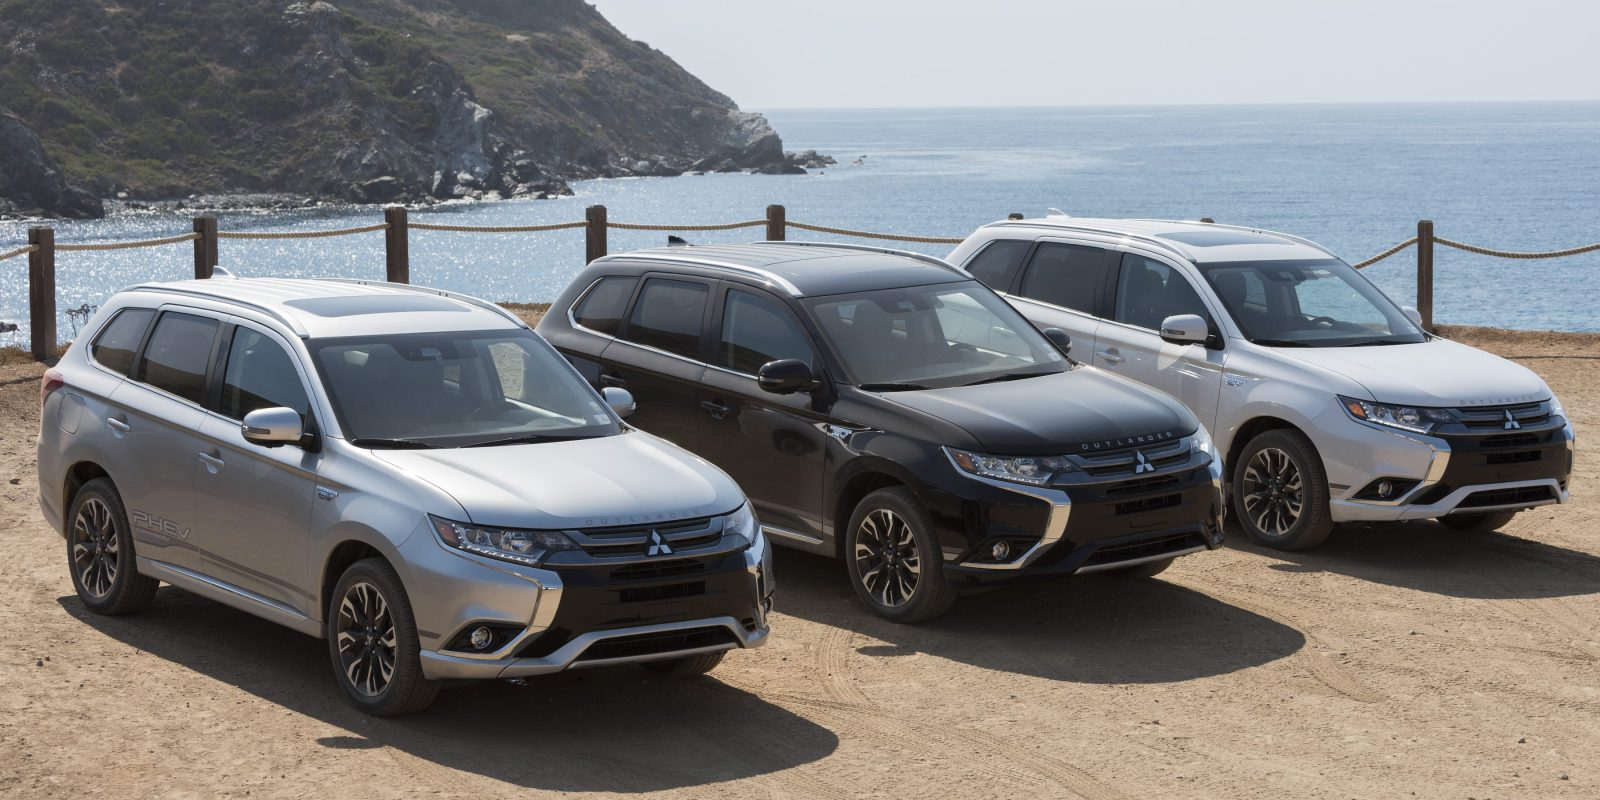 Mitsubishi Slightly Increases Battery Capacity In New 2019 Outlander